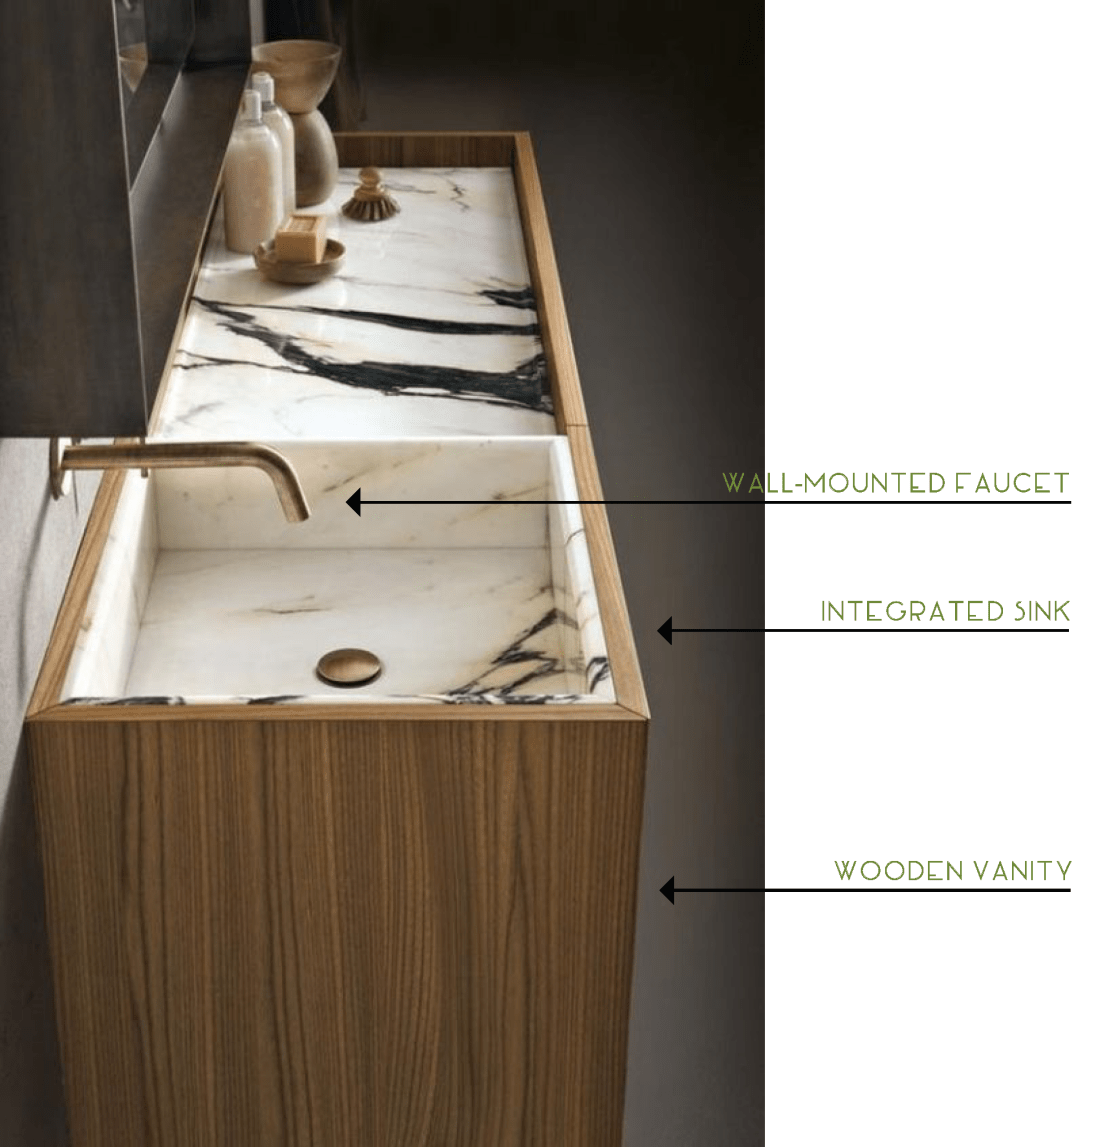 Integrated Sink and Wooden Vanity